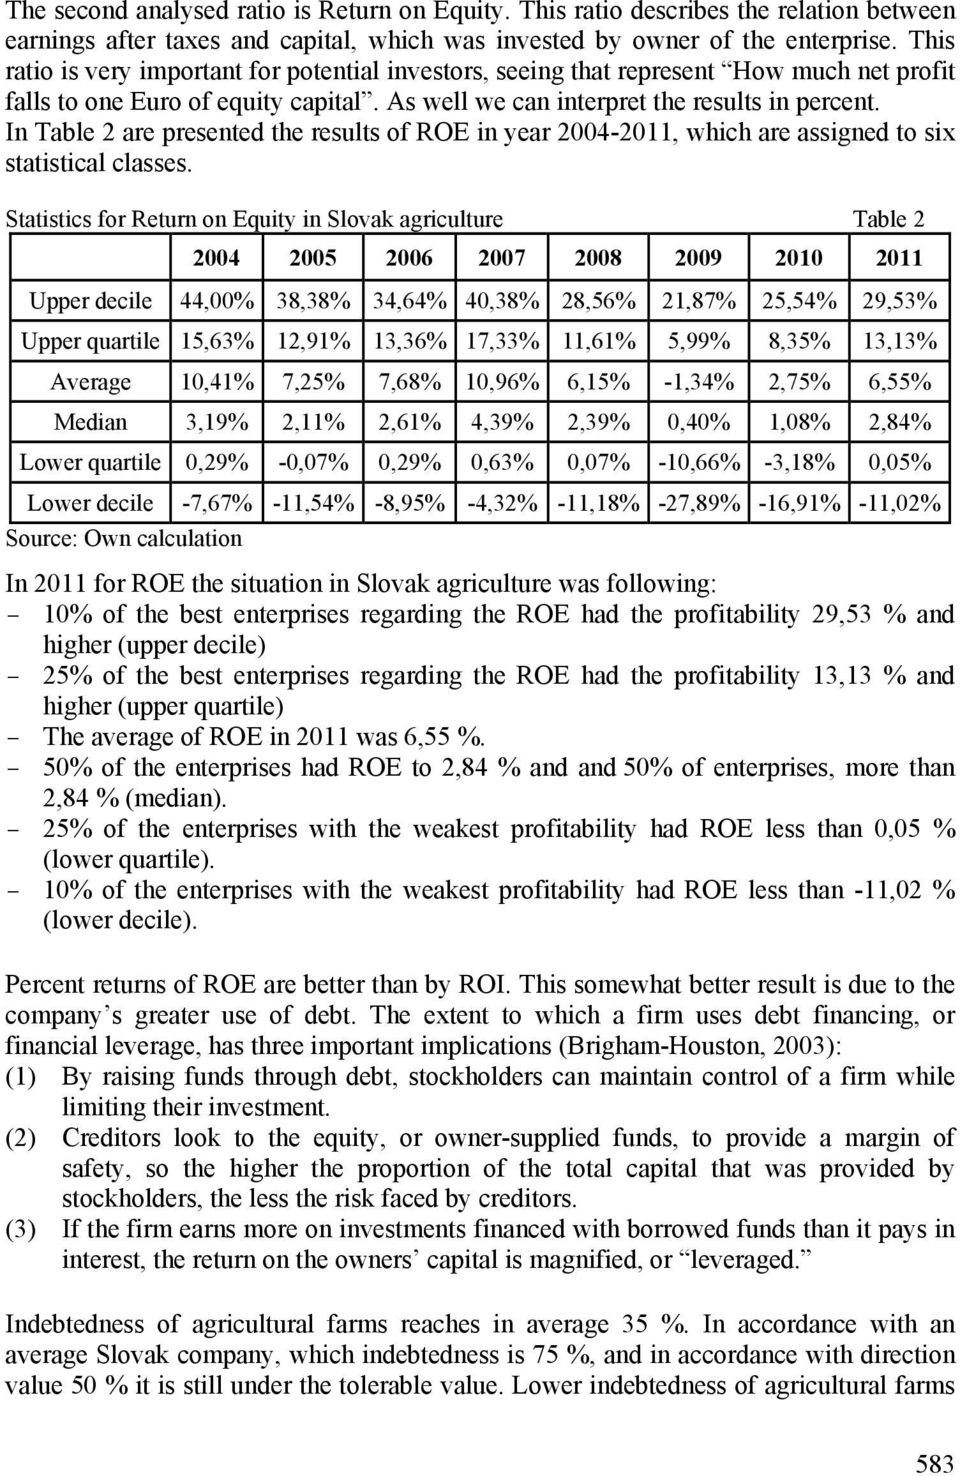 In Table 2 are presented the results of ROE in year 2004-2011, which are assigned to six statistical classes.